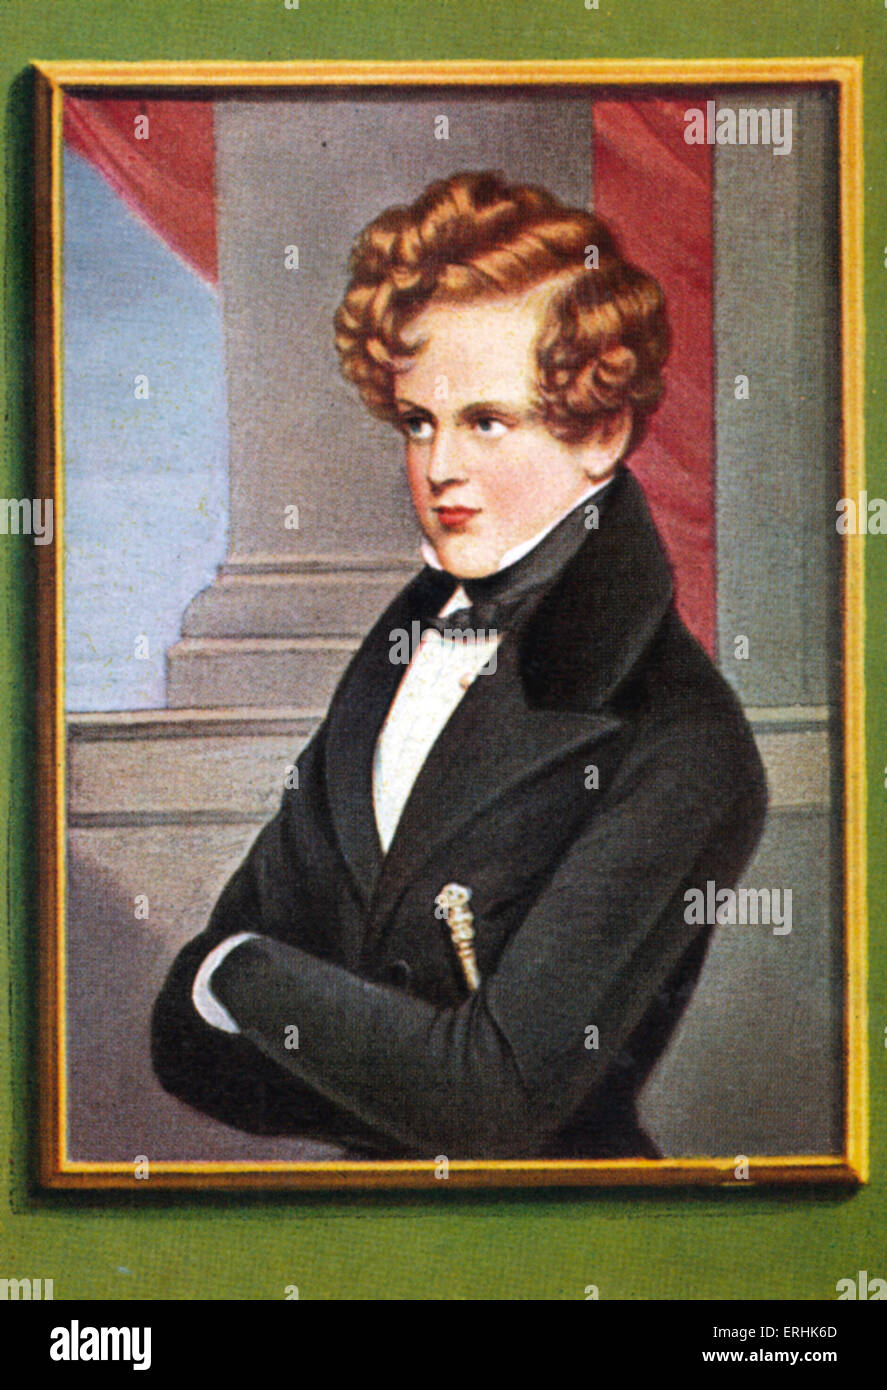 Napoleon II, Duke of Reichstadt. Portrait. Son of Napoleon Bonaparte, and briefly the second Emperor of France. Stock Photo